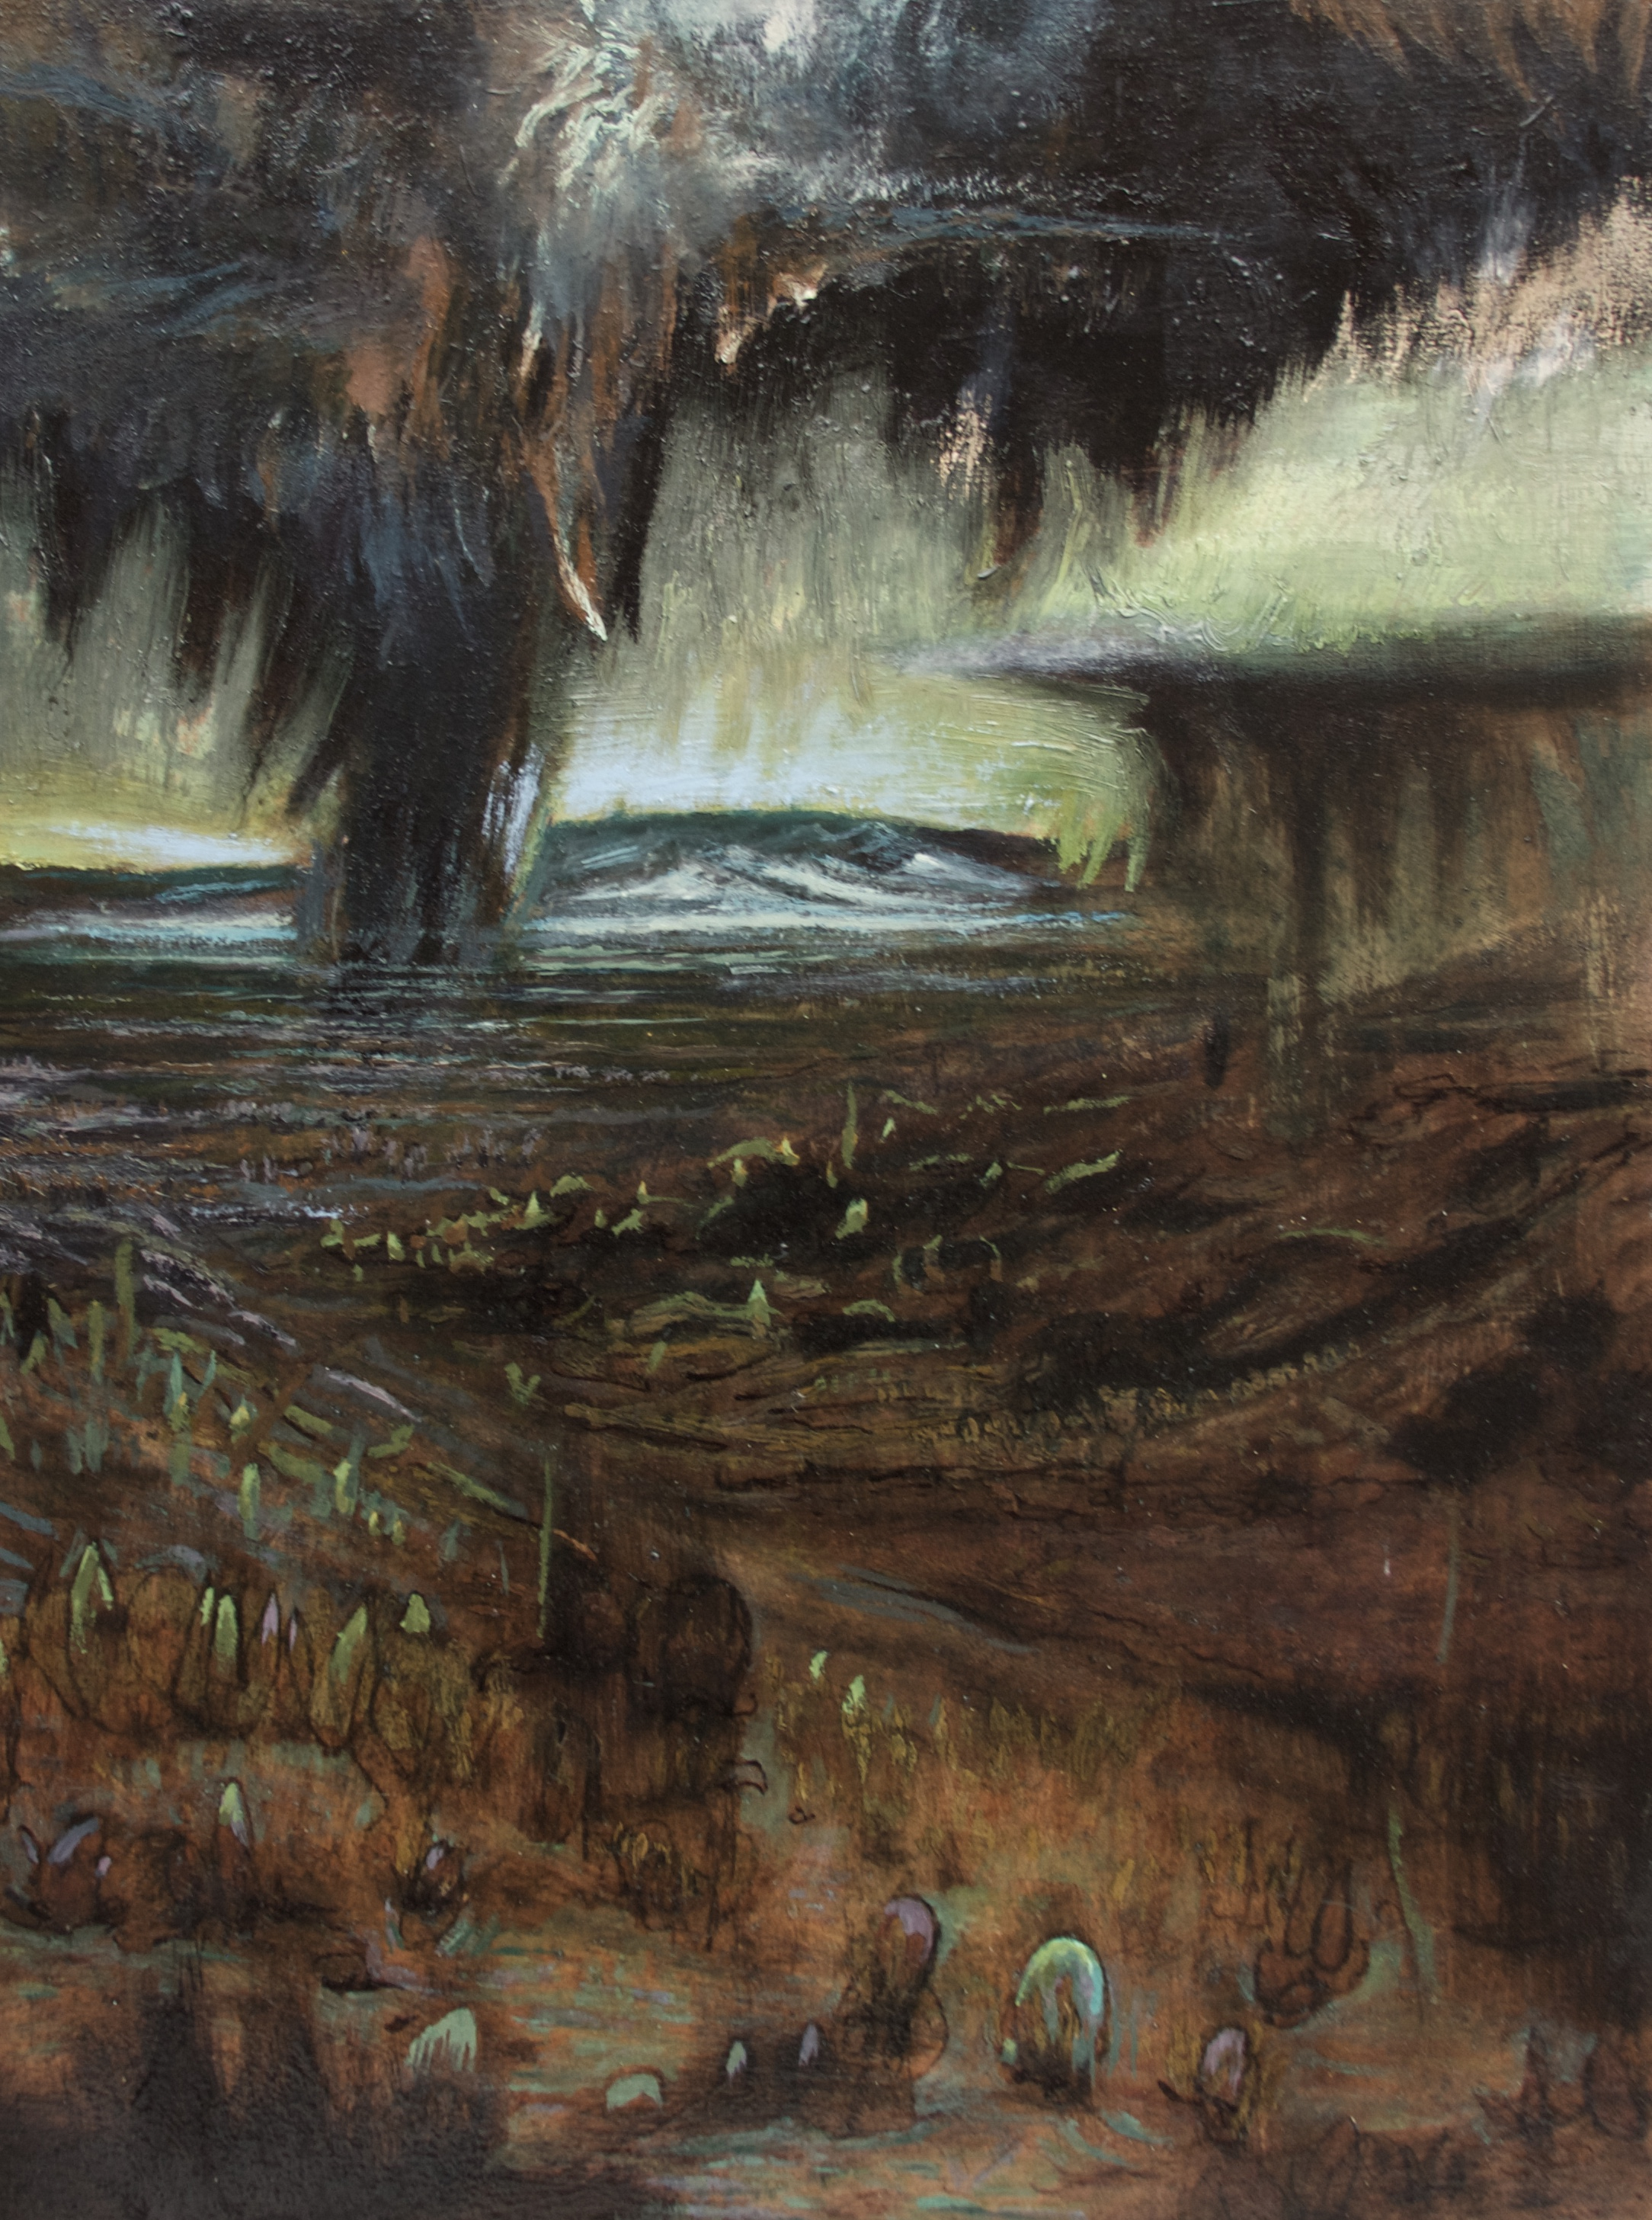 """Land as Open Circuit, Oil, Charcoal - 2016 - 24""""x36"""" - SOLD"""